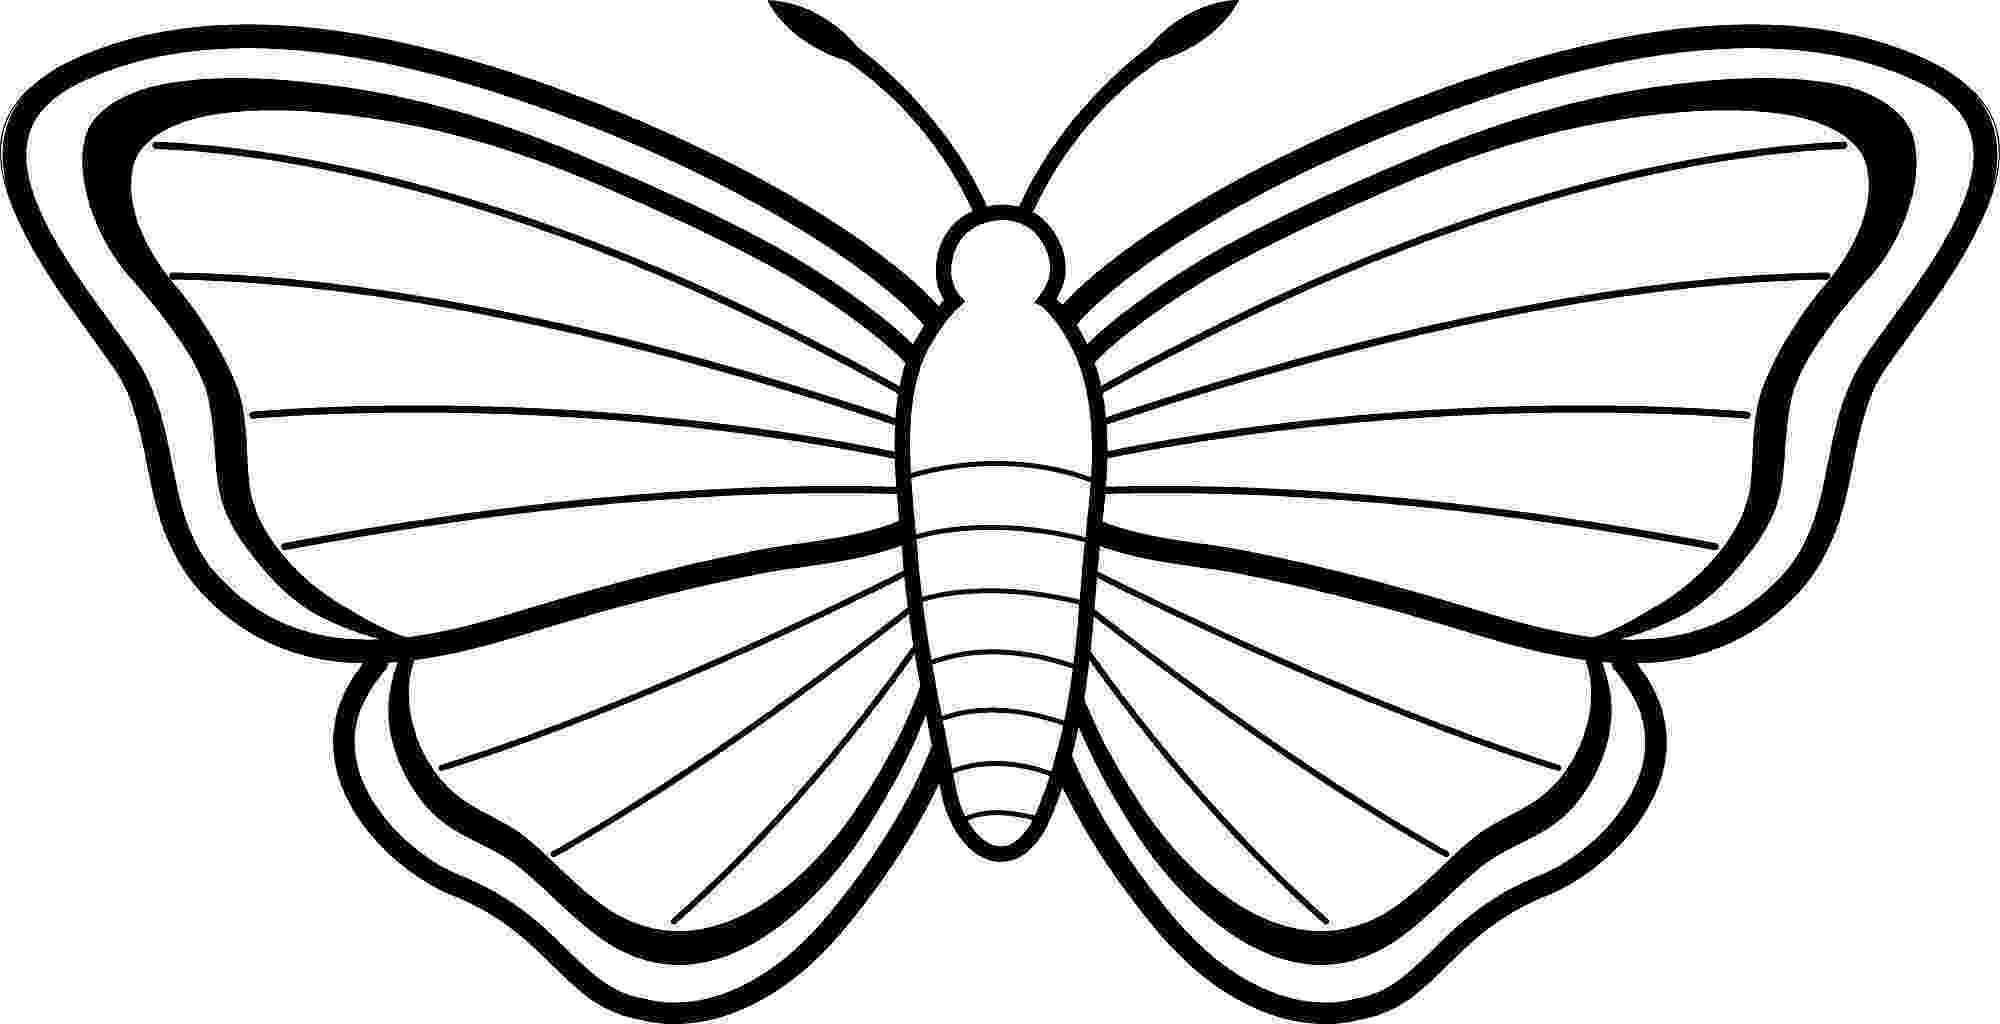 dibujos de para colorear de mariposas free printable butterfly coloring pages for kids de mariposas para colorear de dibujos